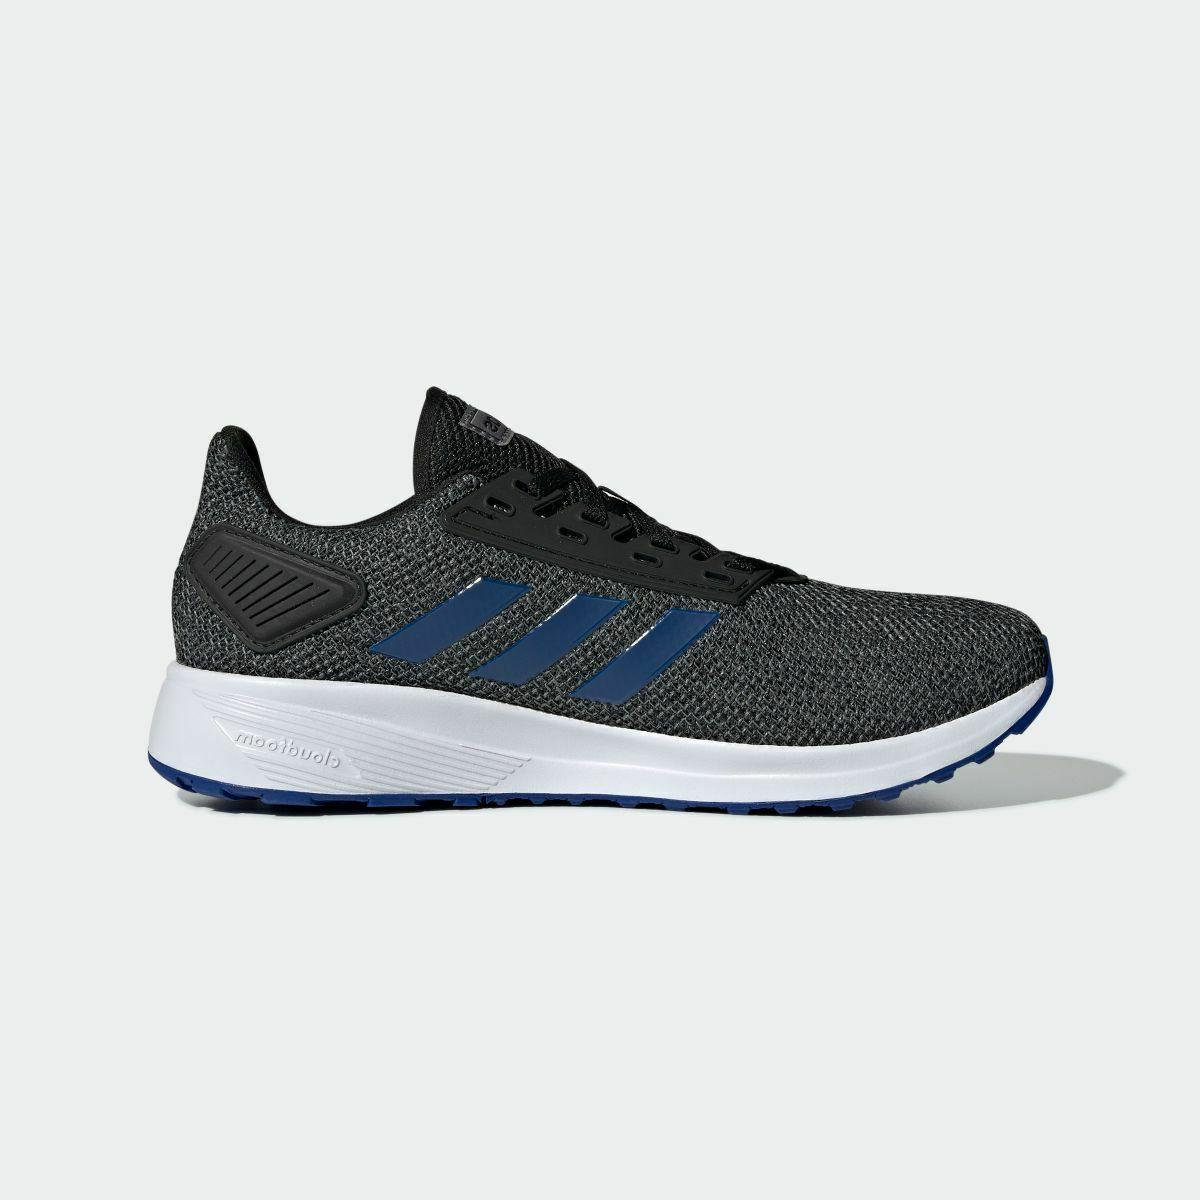 Adidas Duramo Black Blue Running Shoes Multi Sizes